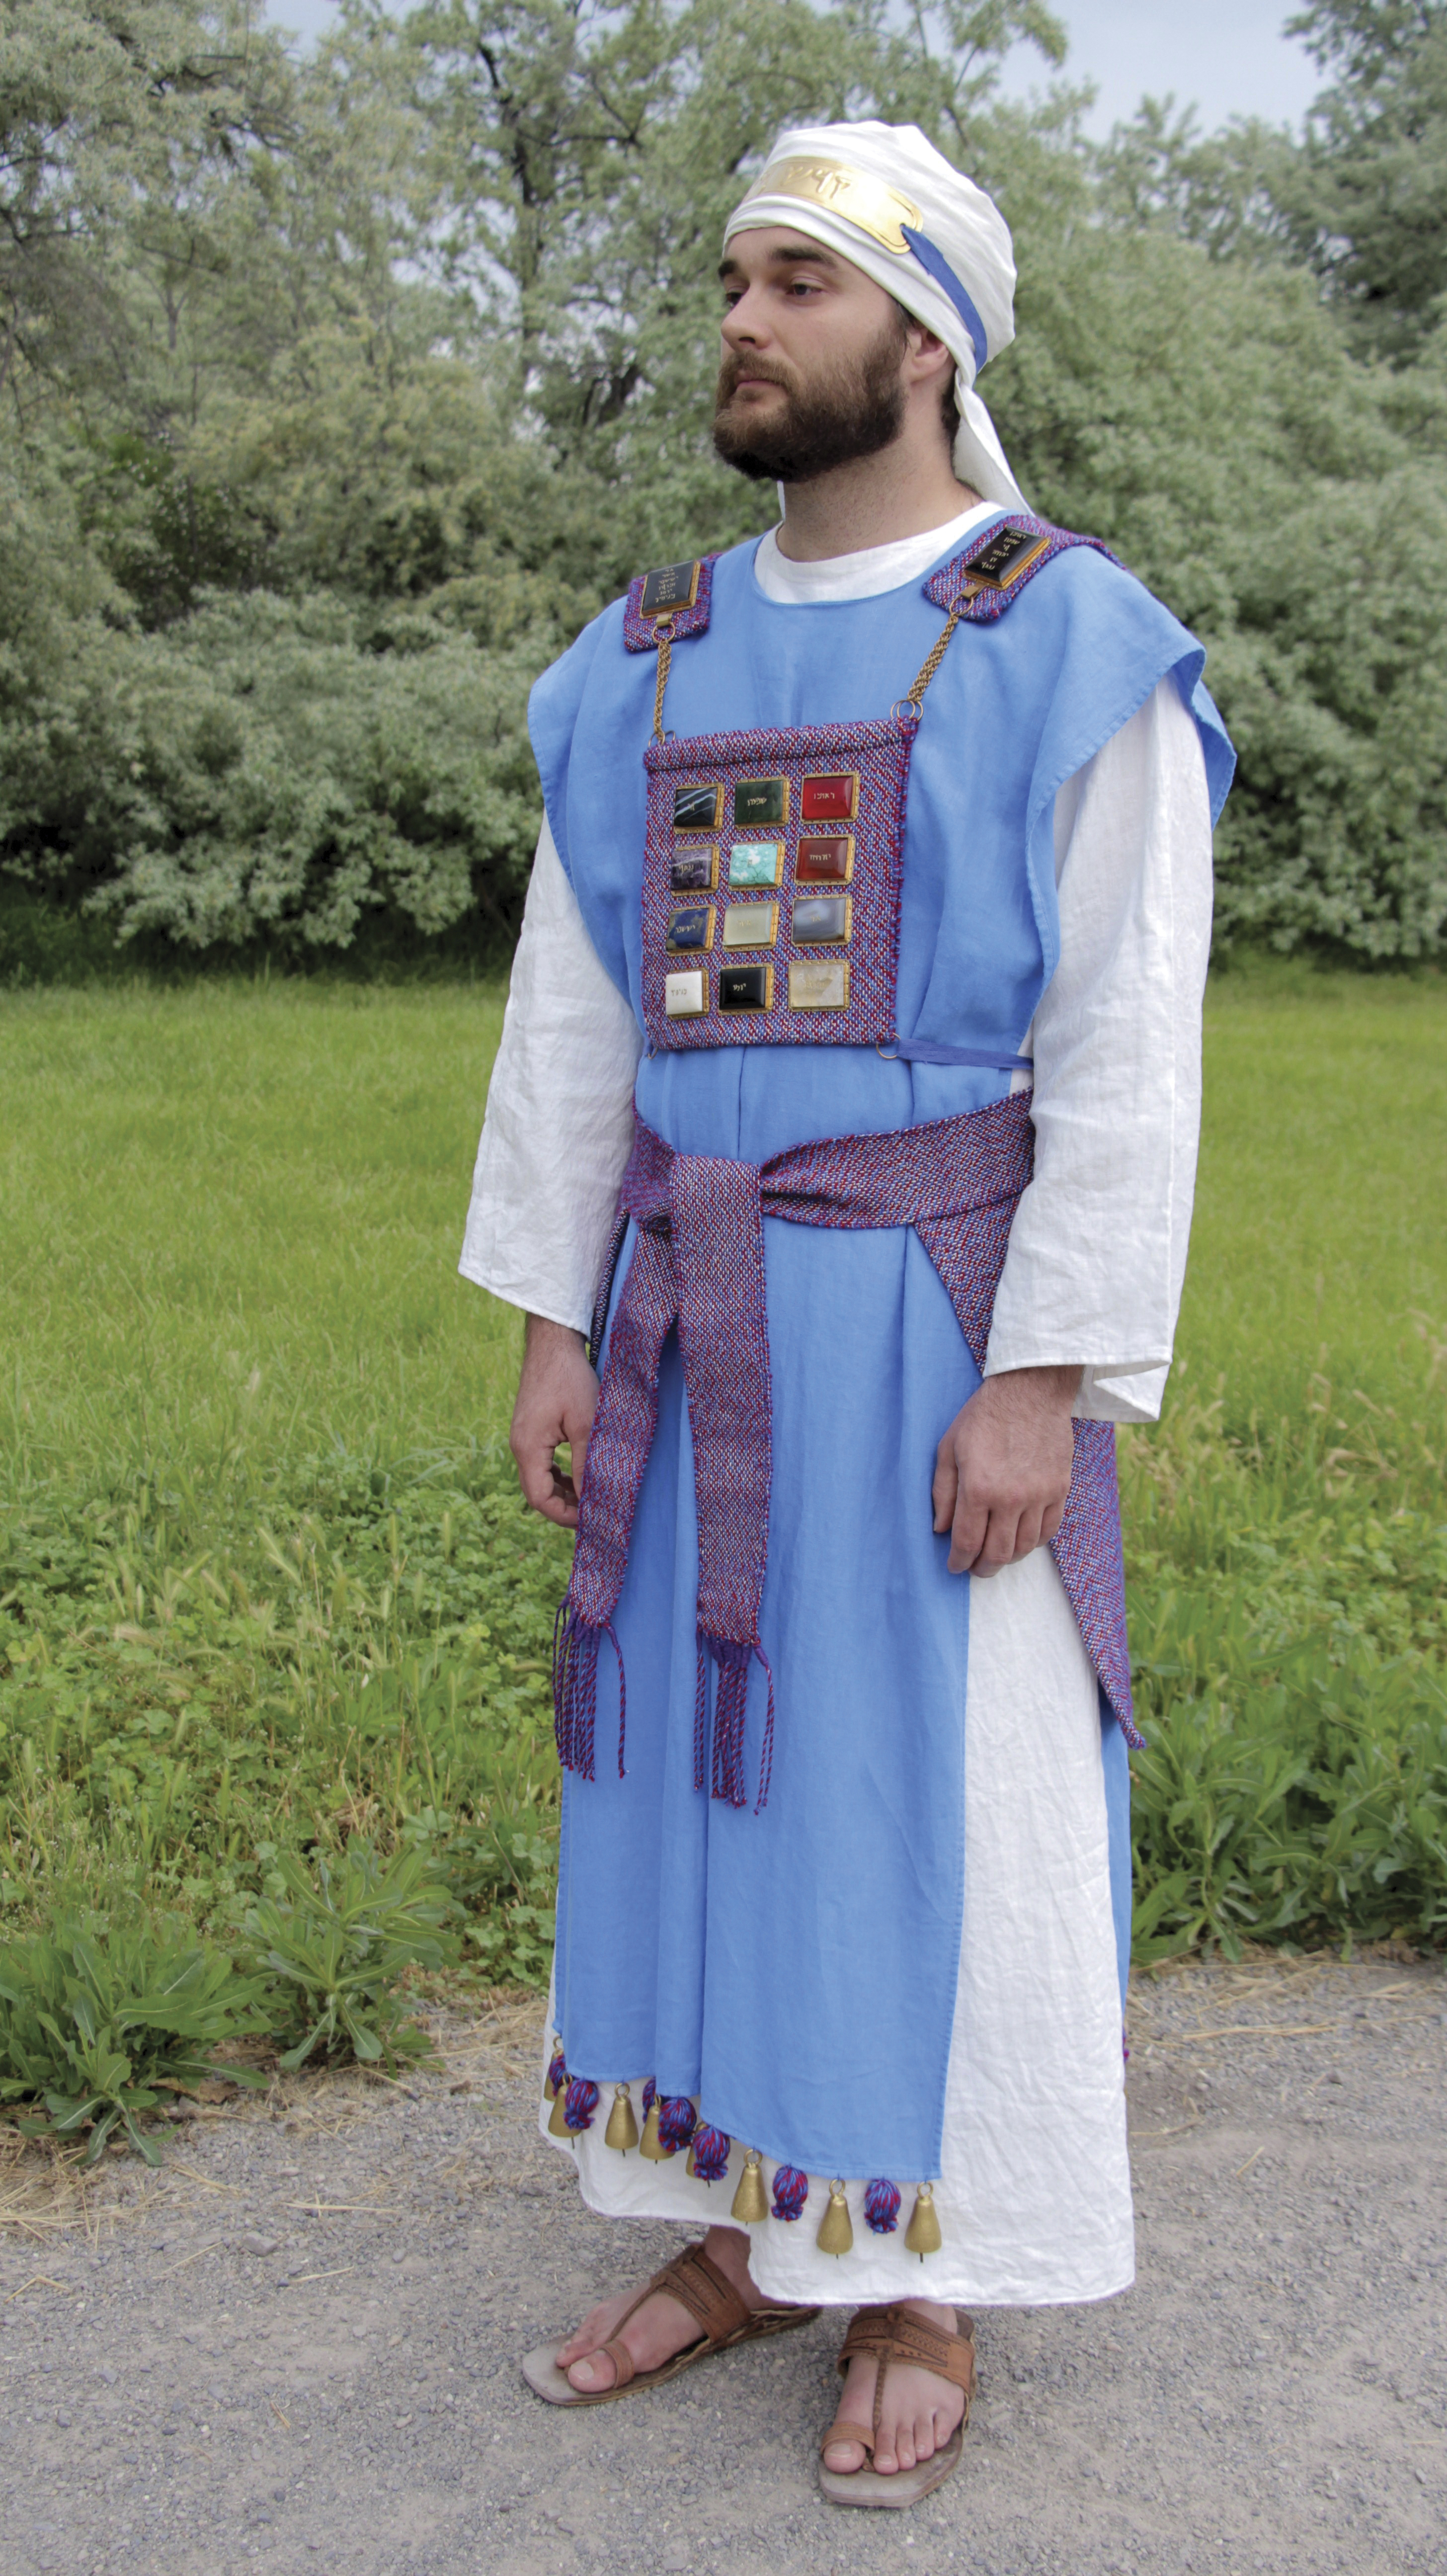 A model wearing the clothing of an Old Testament high priest, created by Israel Daniel Smith.